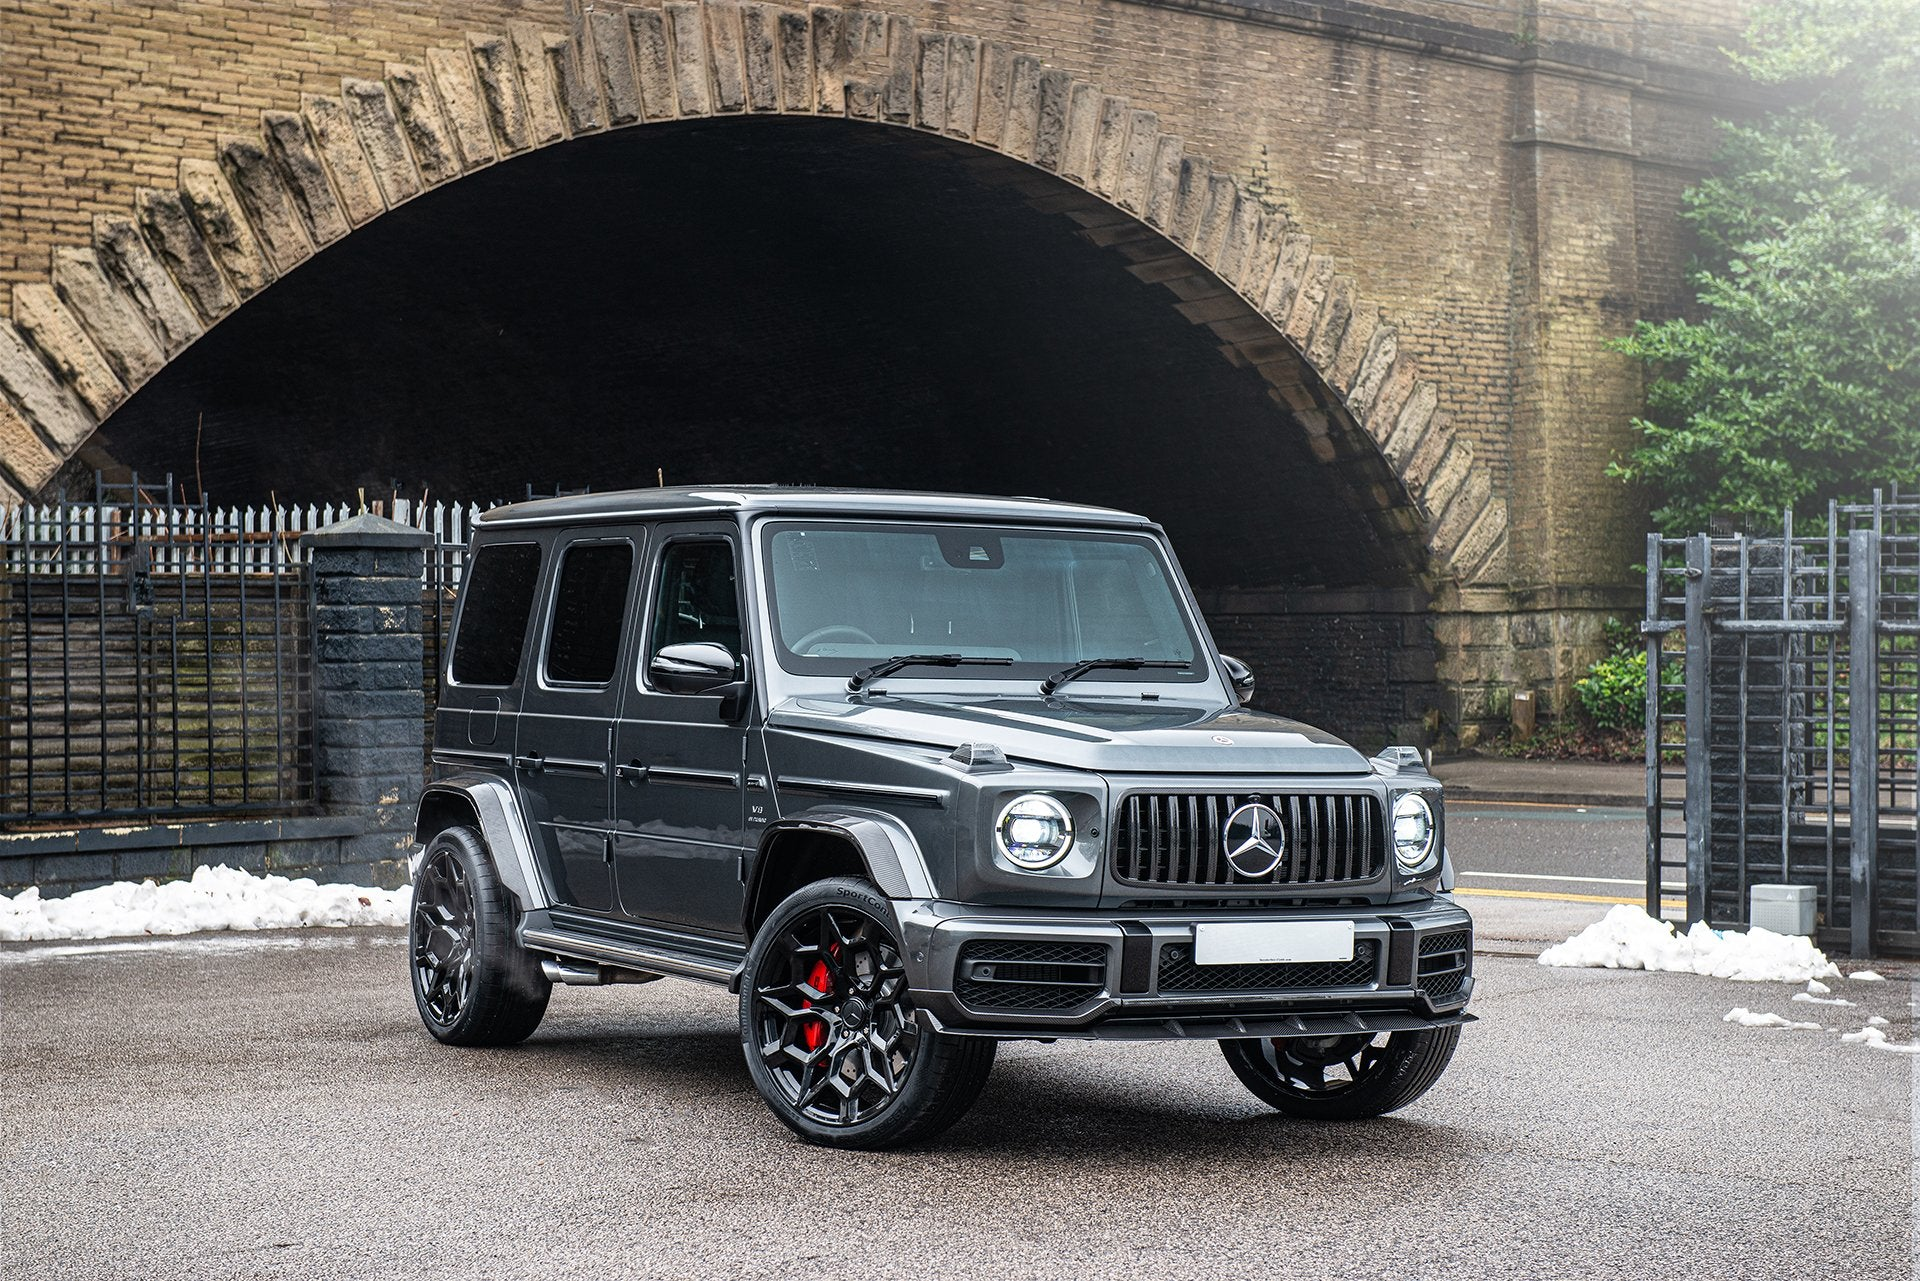 MERCEDES G-WAGON (2018-PRESENT) HAMMER EDITION II - EXPOSED CARBON BODY KIT